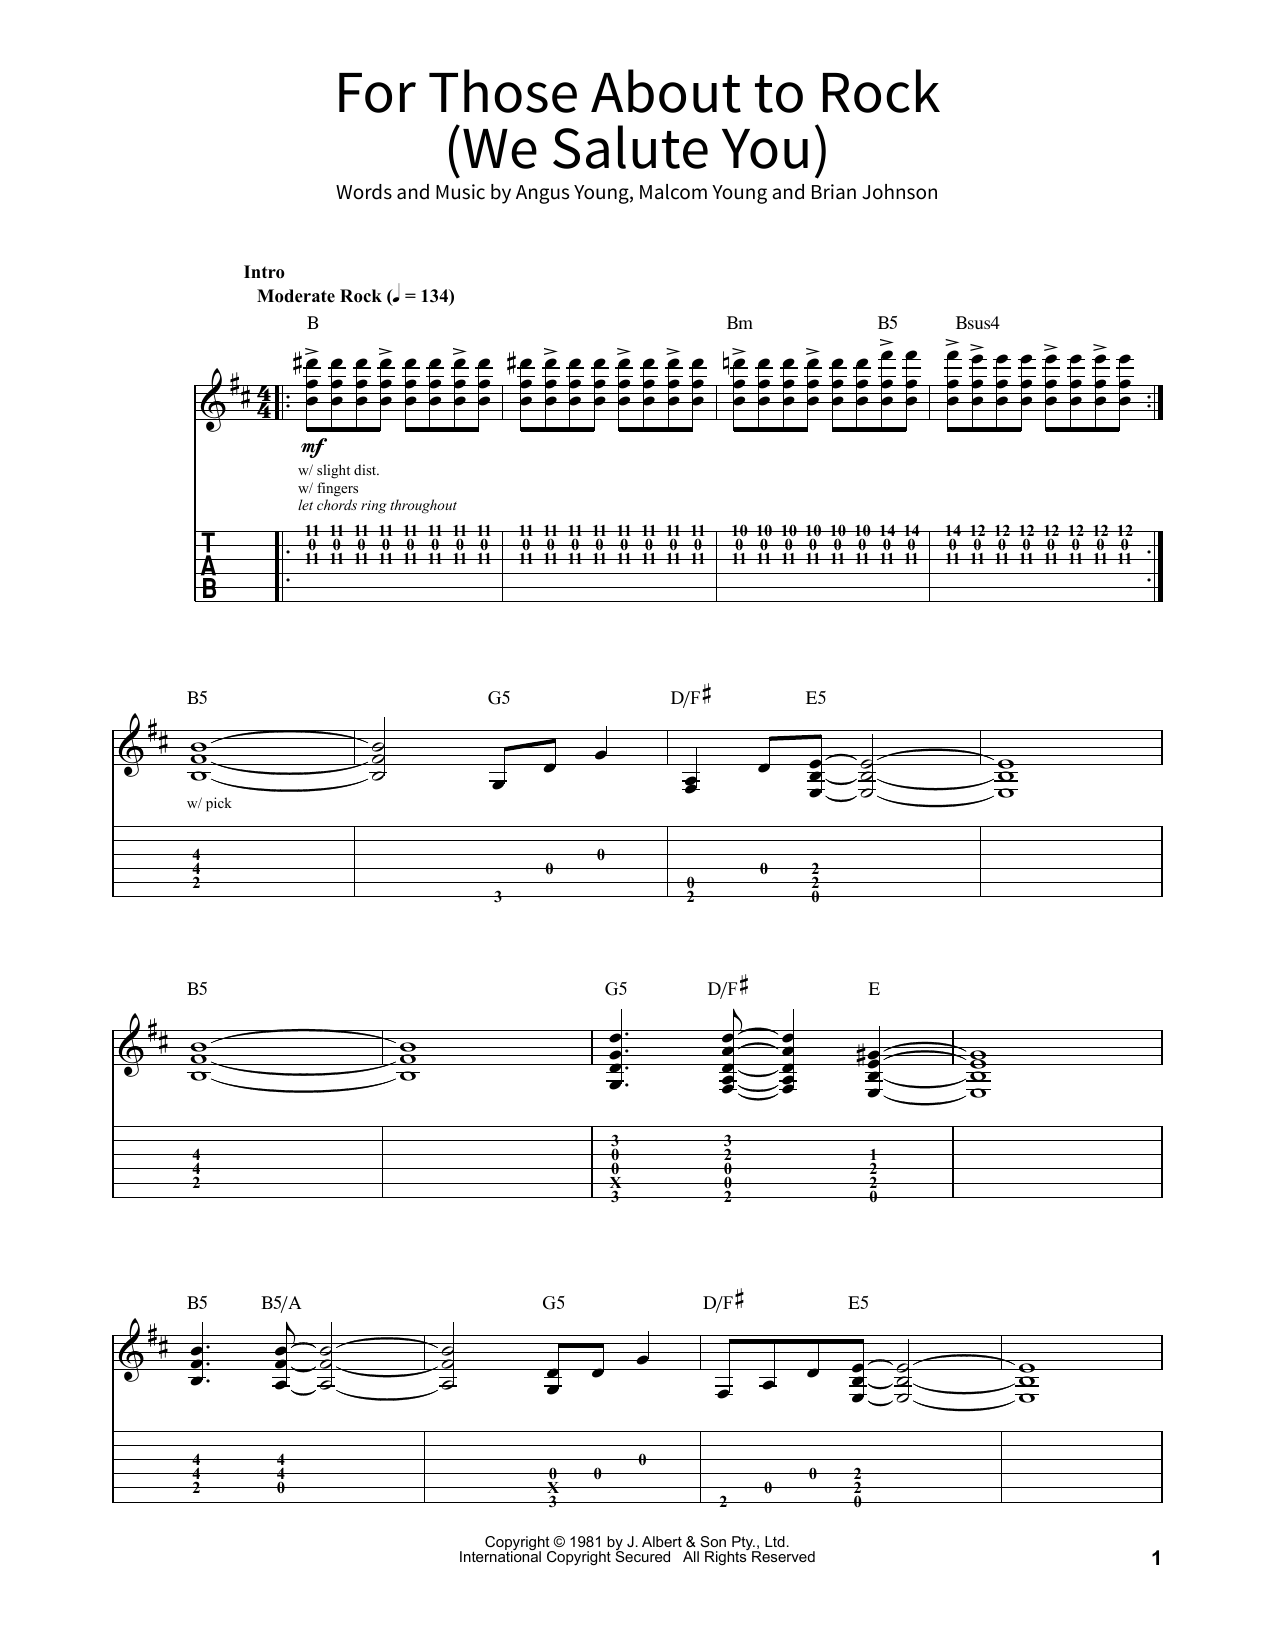 For Those About To Rock (We Salute You) Sheet Music